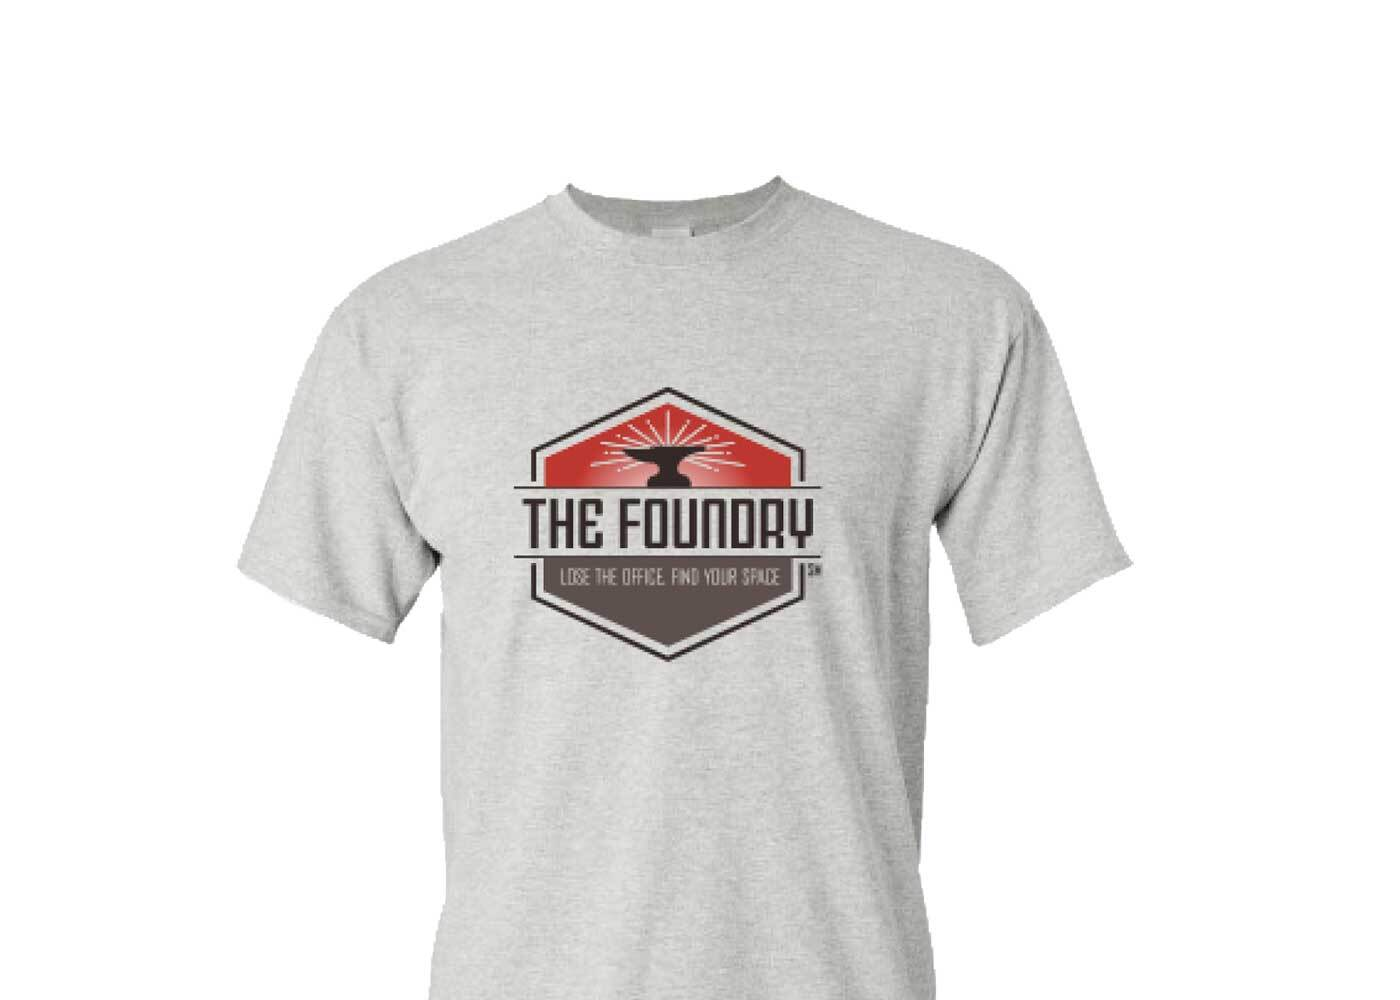 Treystar The Foundry shirts